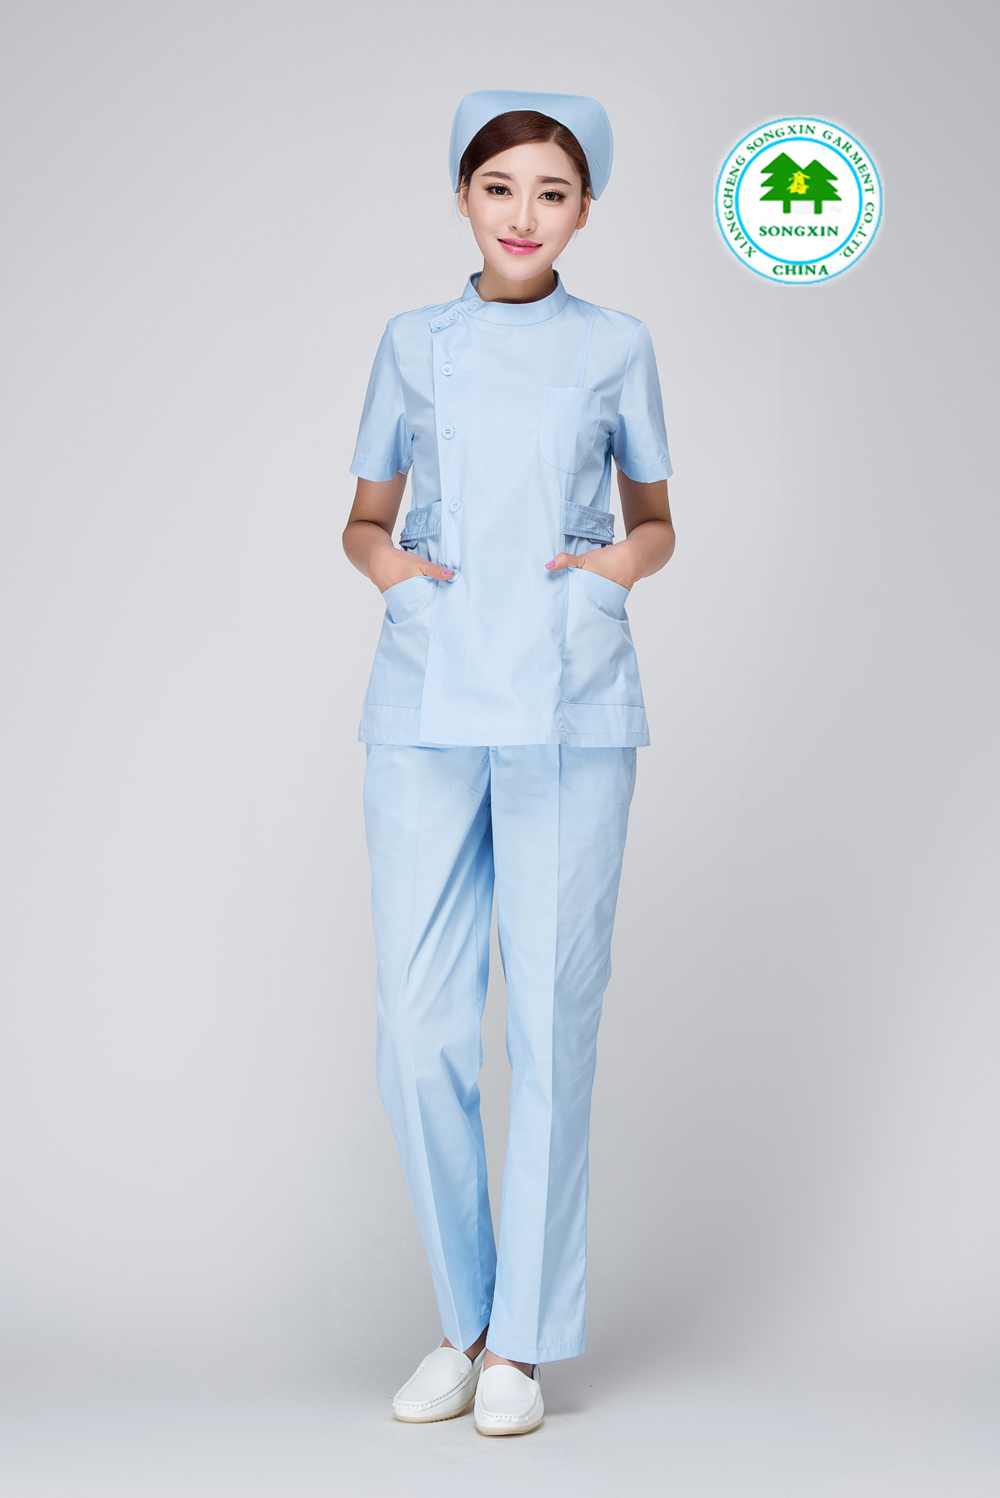 e312afe3b4ff0 Free Shipping OEM uniformes hospital nursing scrubs medical clothing lab  coat doctor nurse overalls medical women work wear fit-in Nurse Uniform  from ...